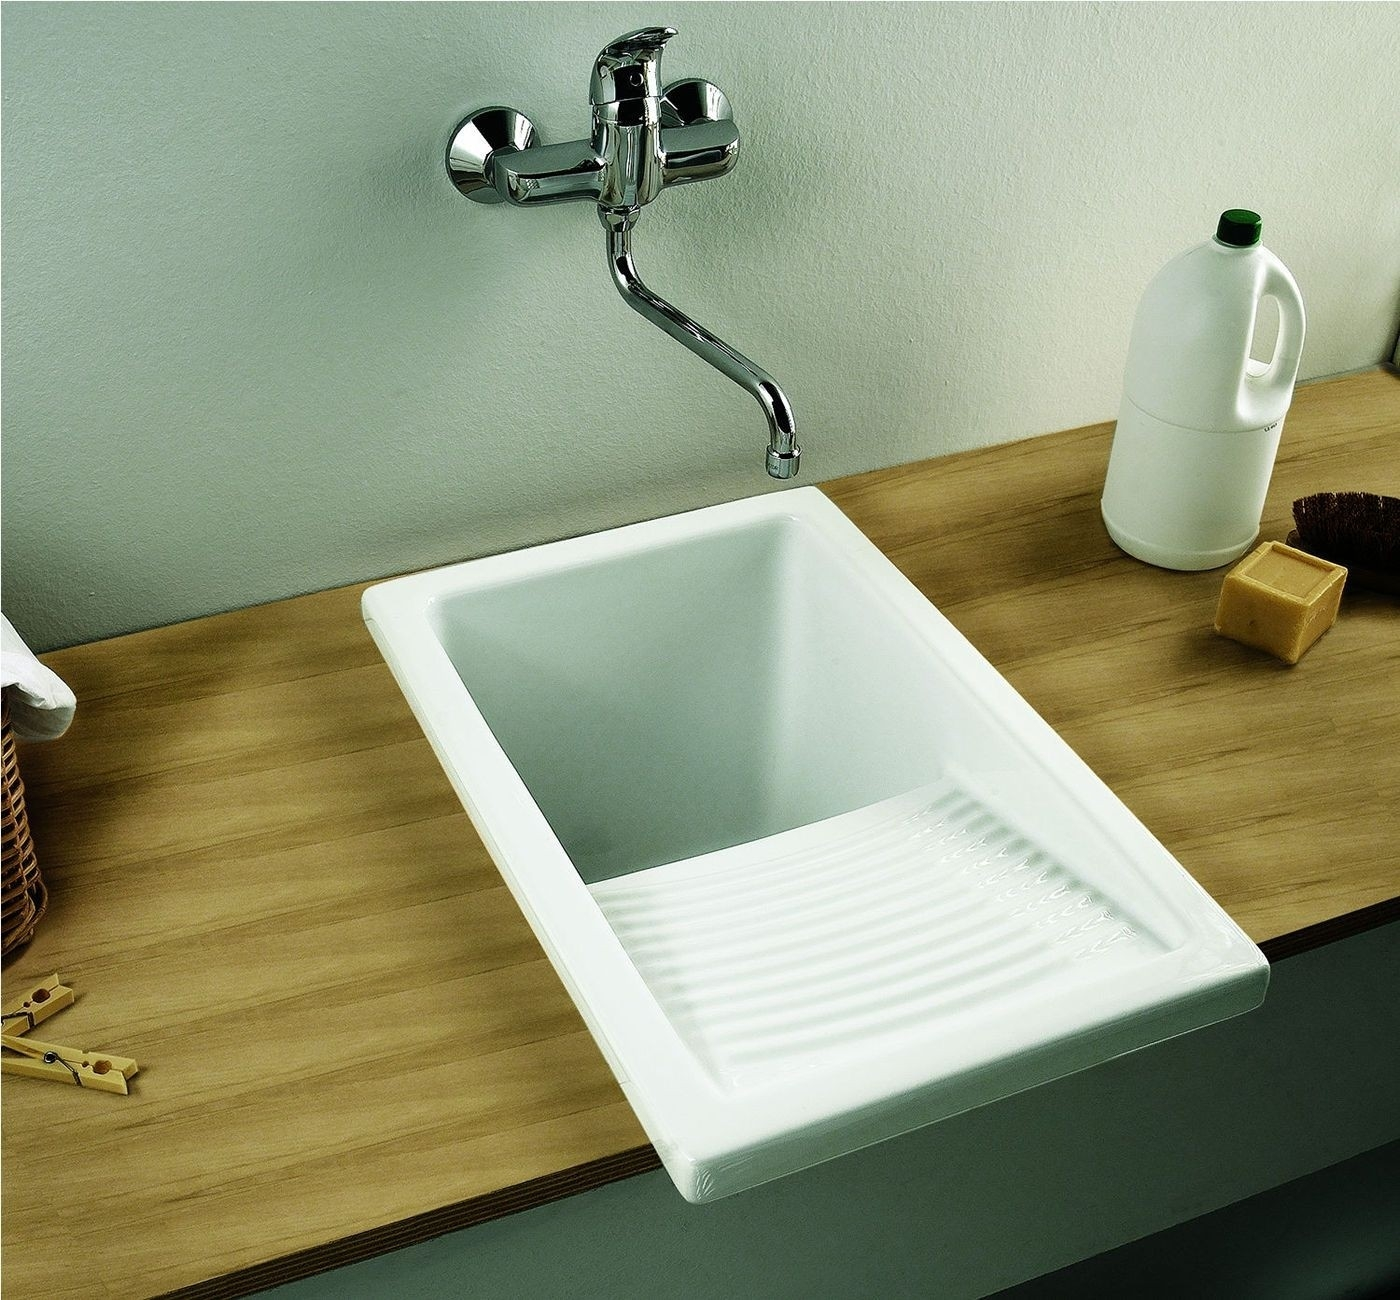 Ceramic Laundry Sink Ideas On Foter